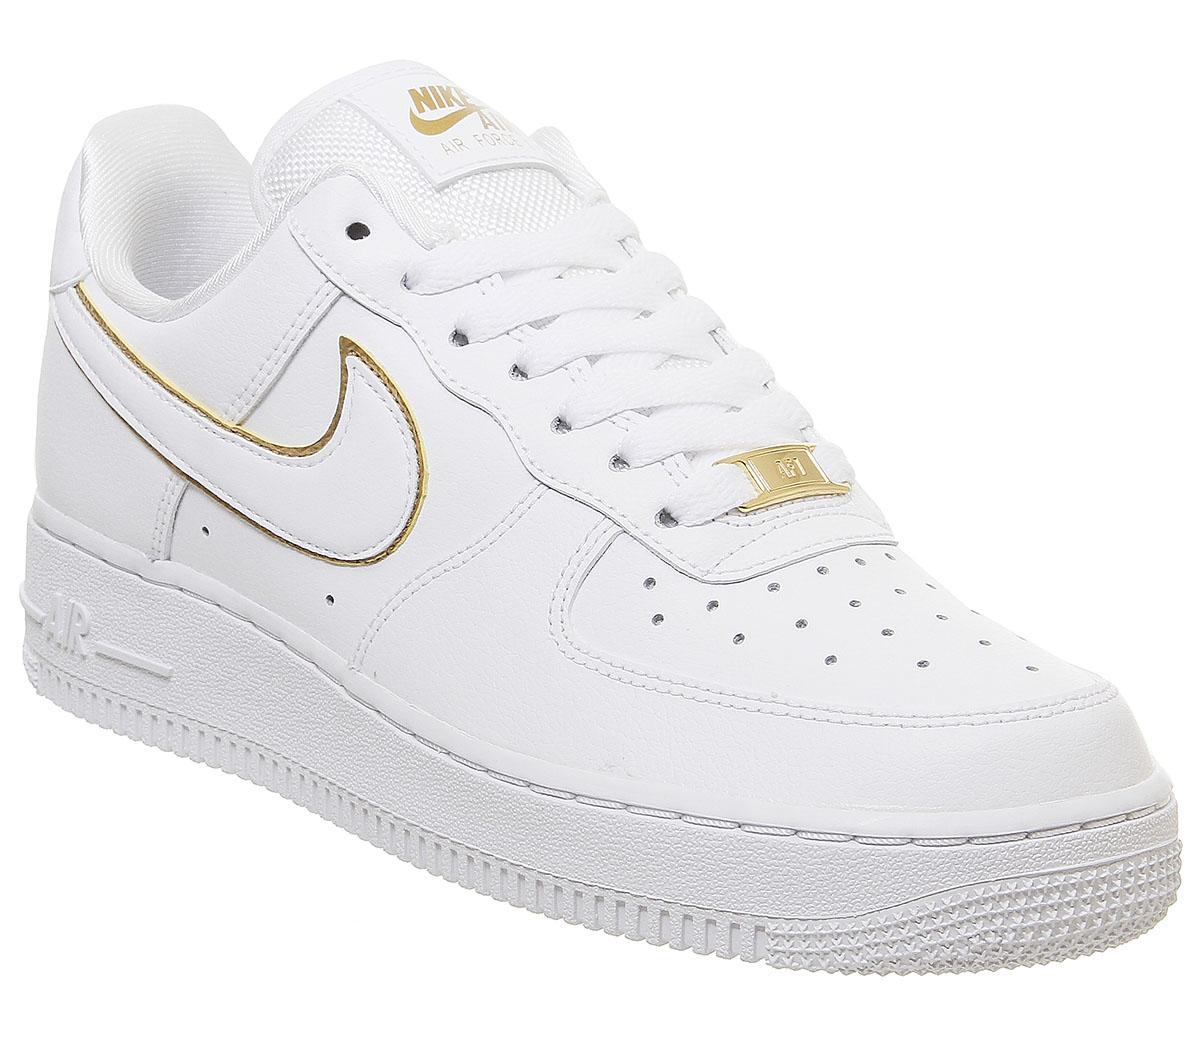 Nike Air Force 1 07 Trainers White White Metallic Gold White